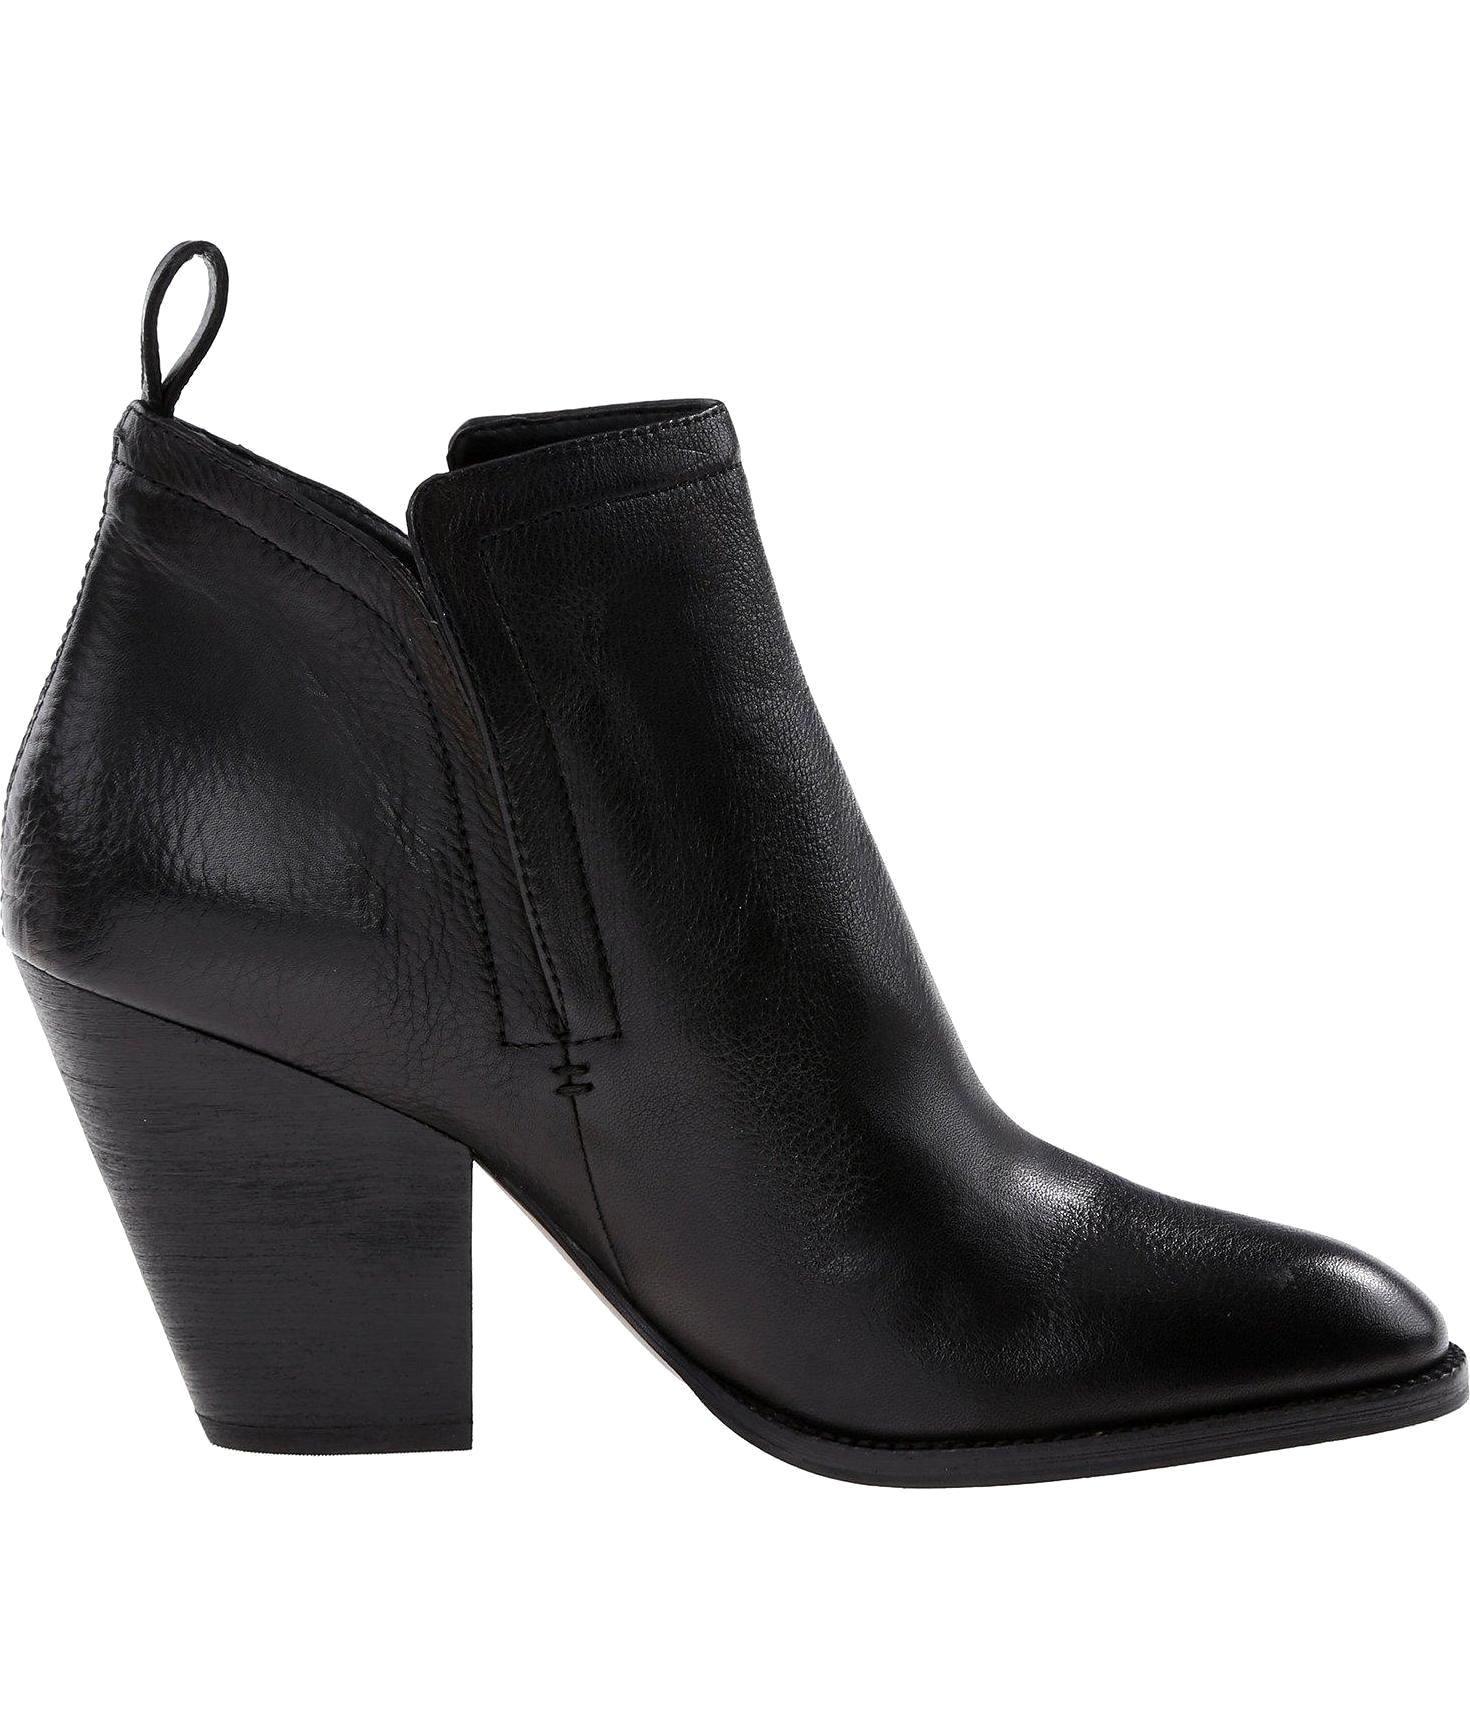 Am Dolce Vita: Dolce Vita Women's Hastings Boot In Black